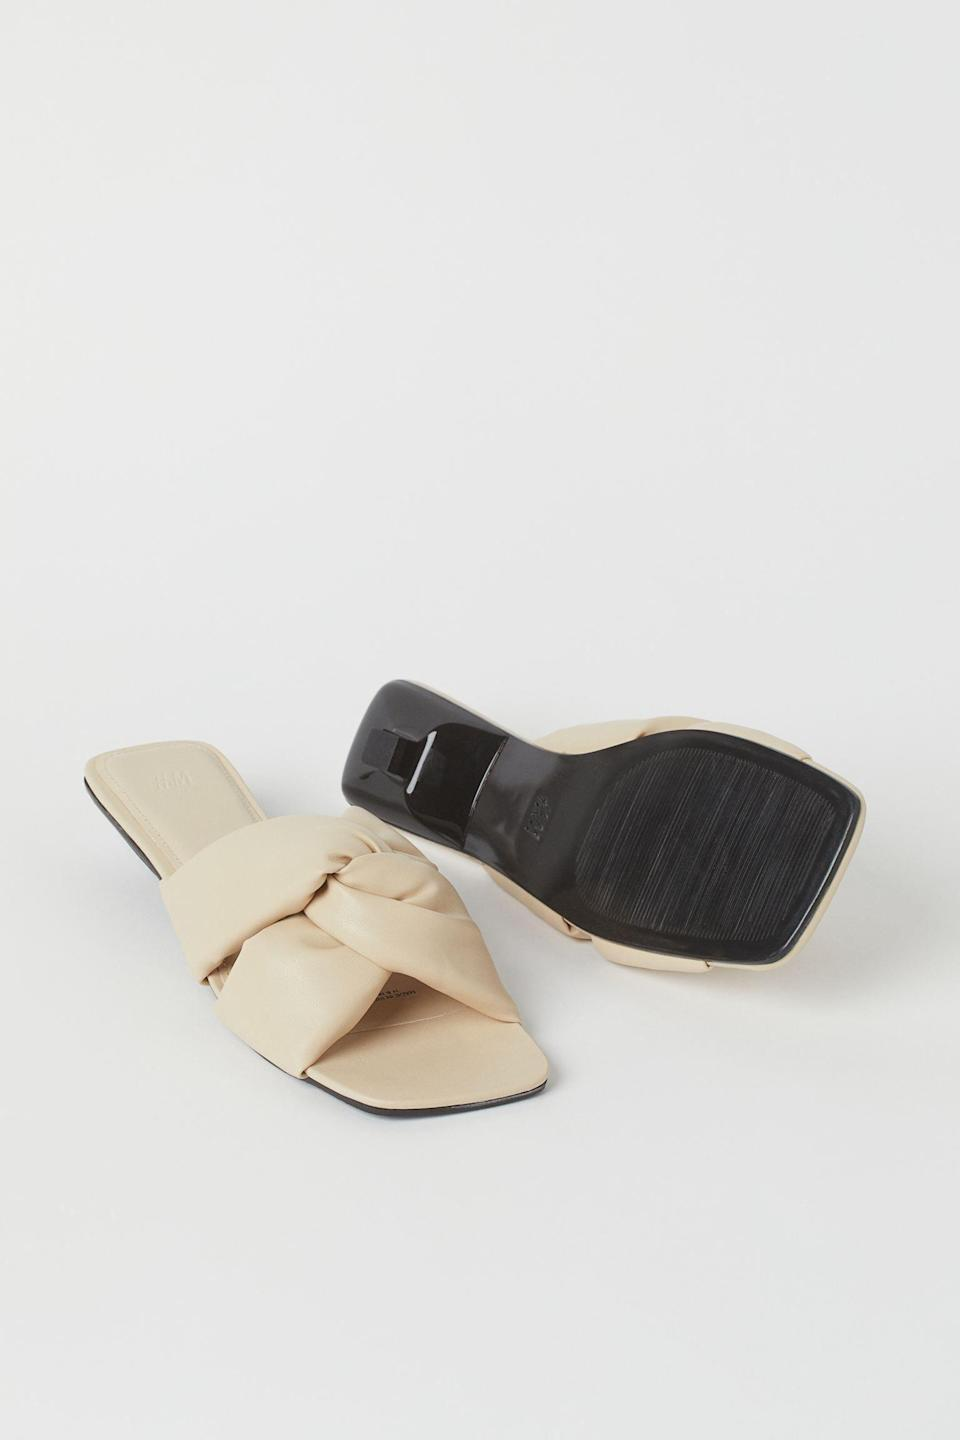 <p>You'll love slipping into these <span>Padded Slip-on Sandals</span> ($30) for a chic office happy hour.</p>